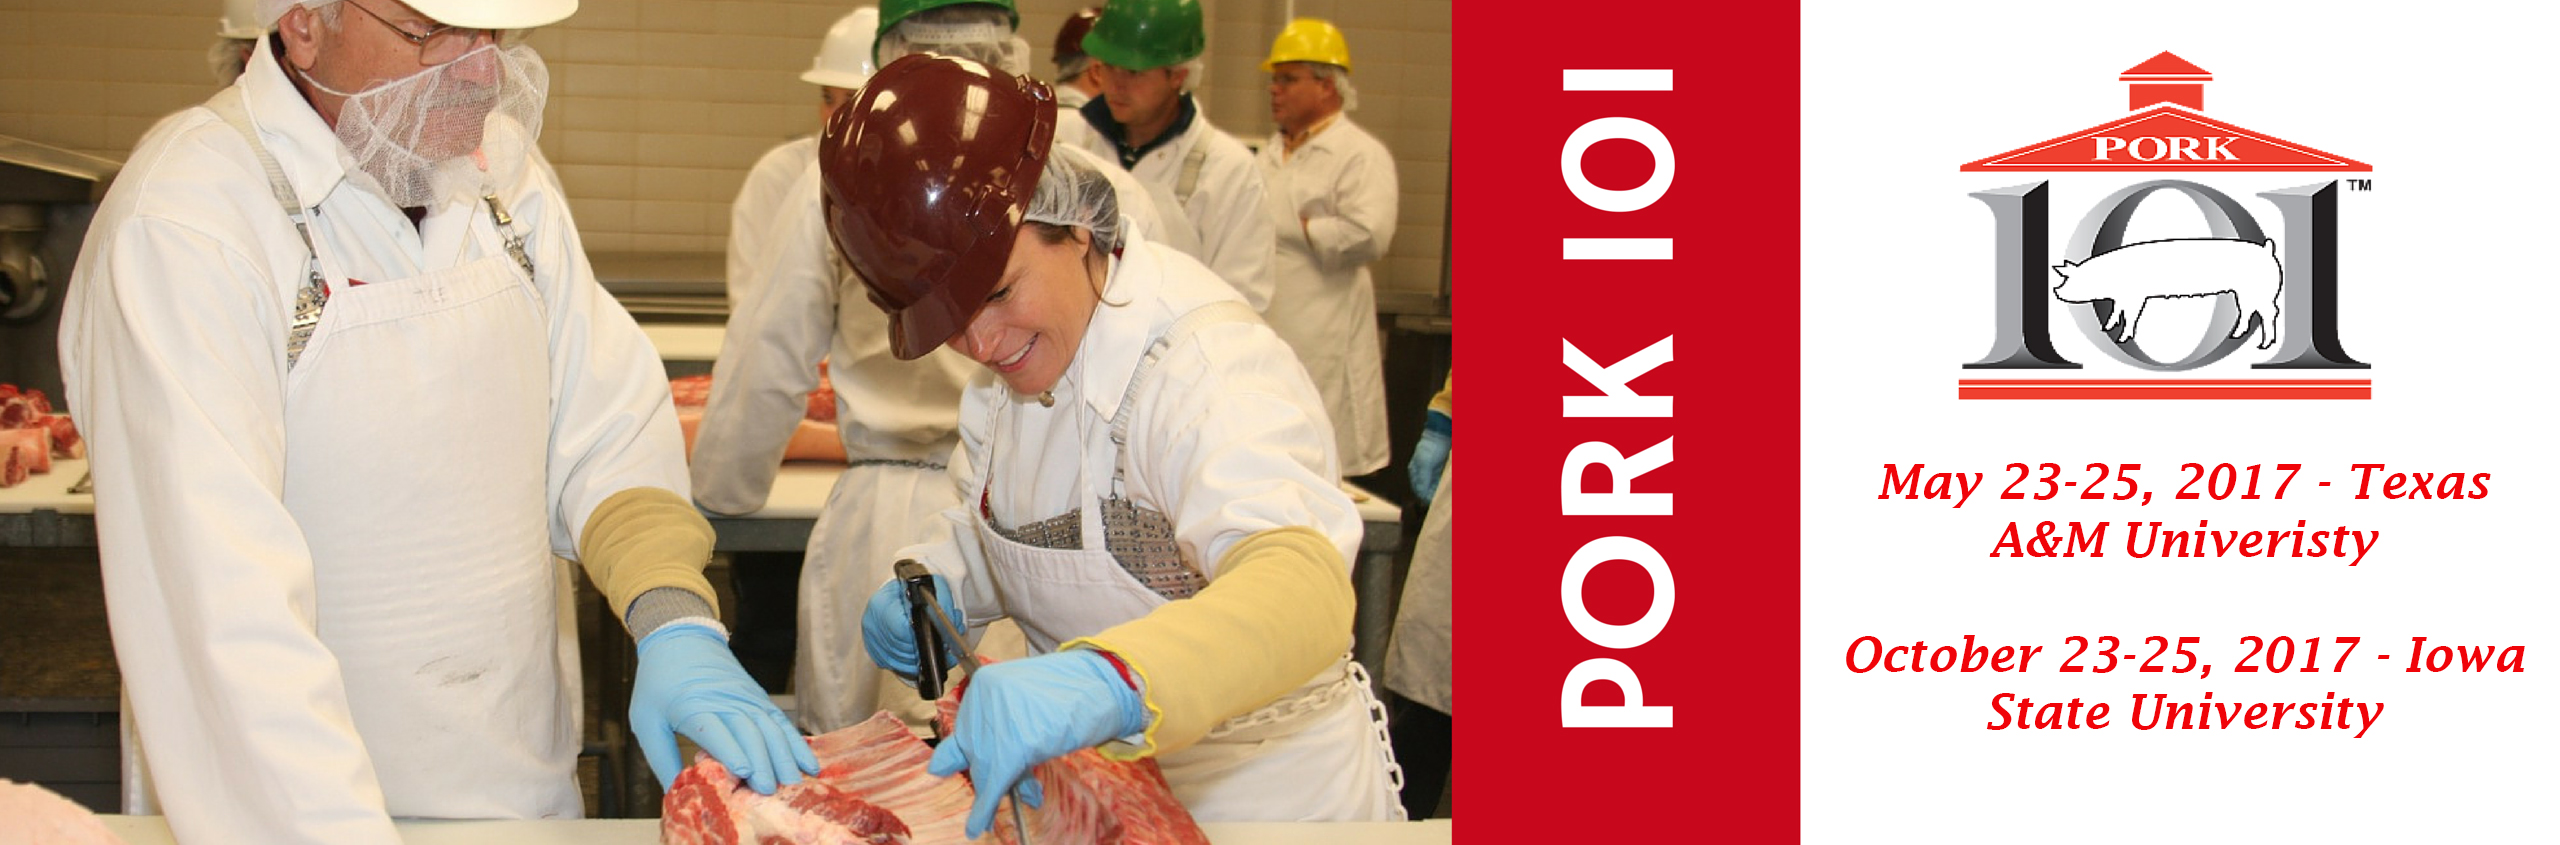 Sign-up for PORK 101 Today!